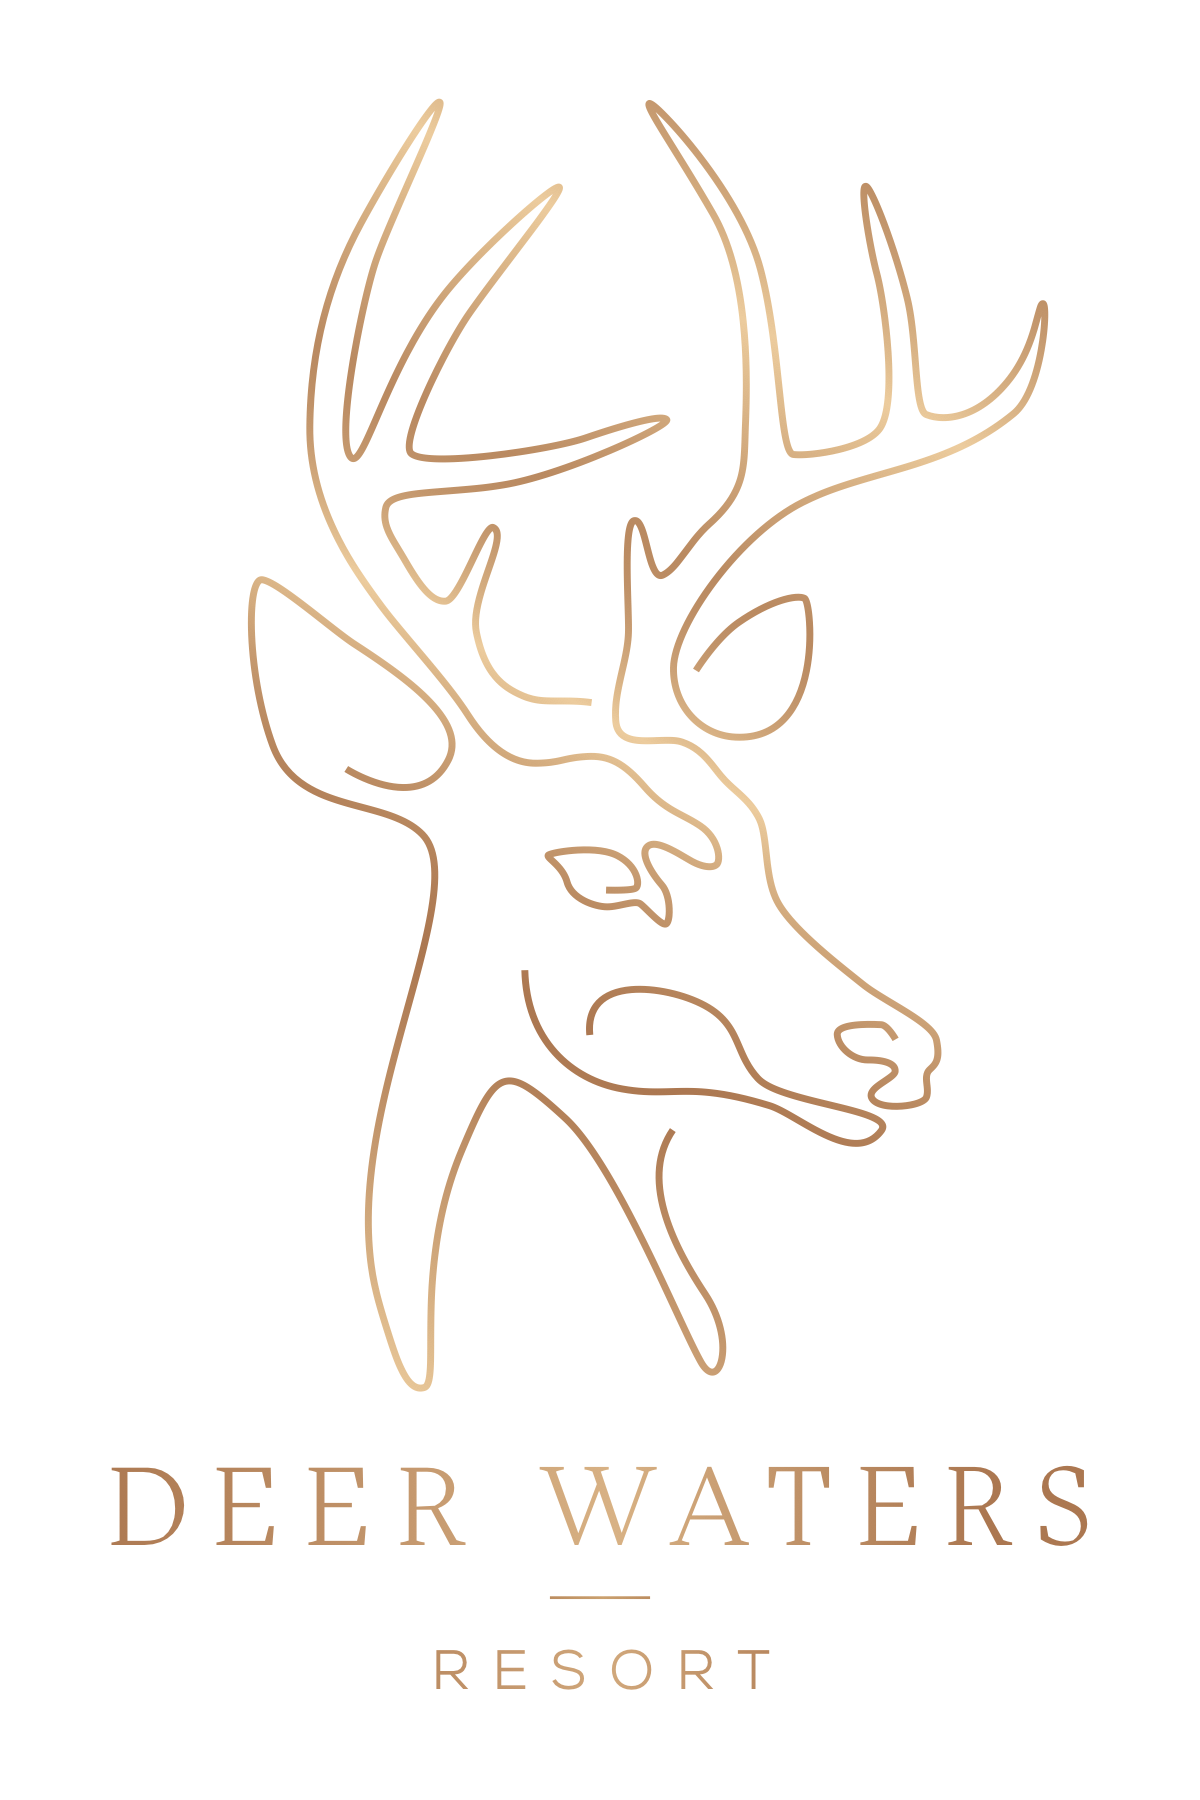 Deer Waters